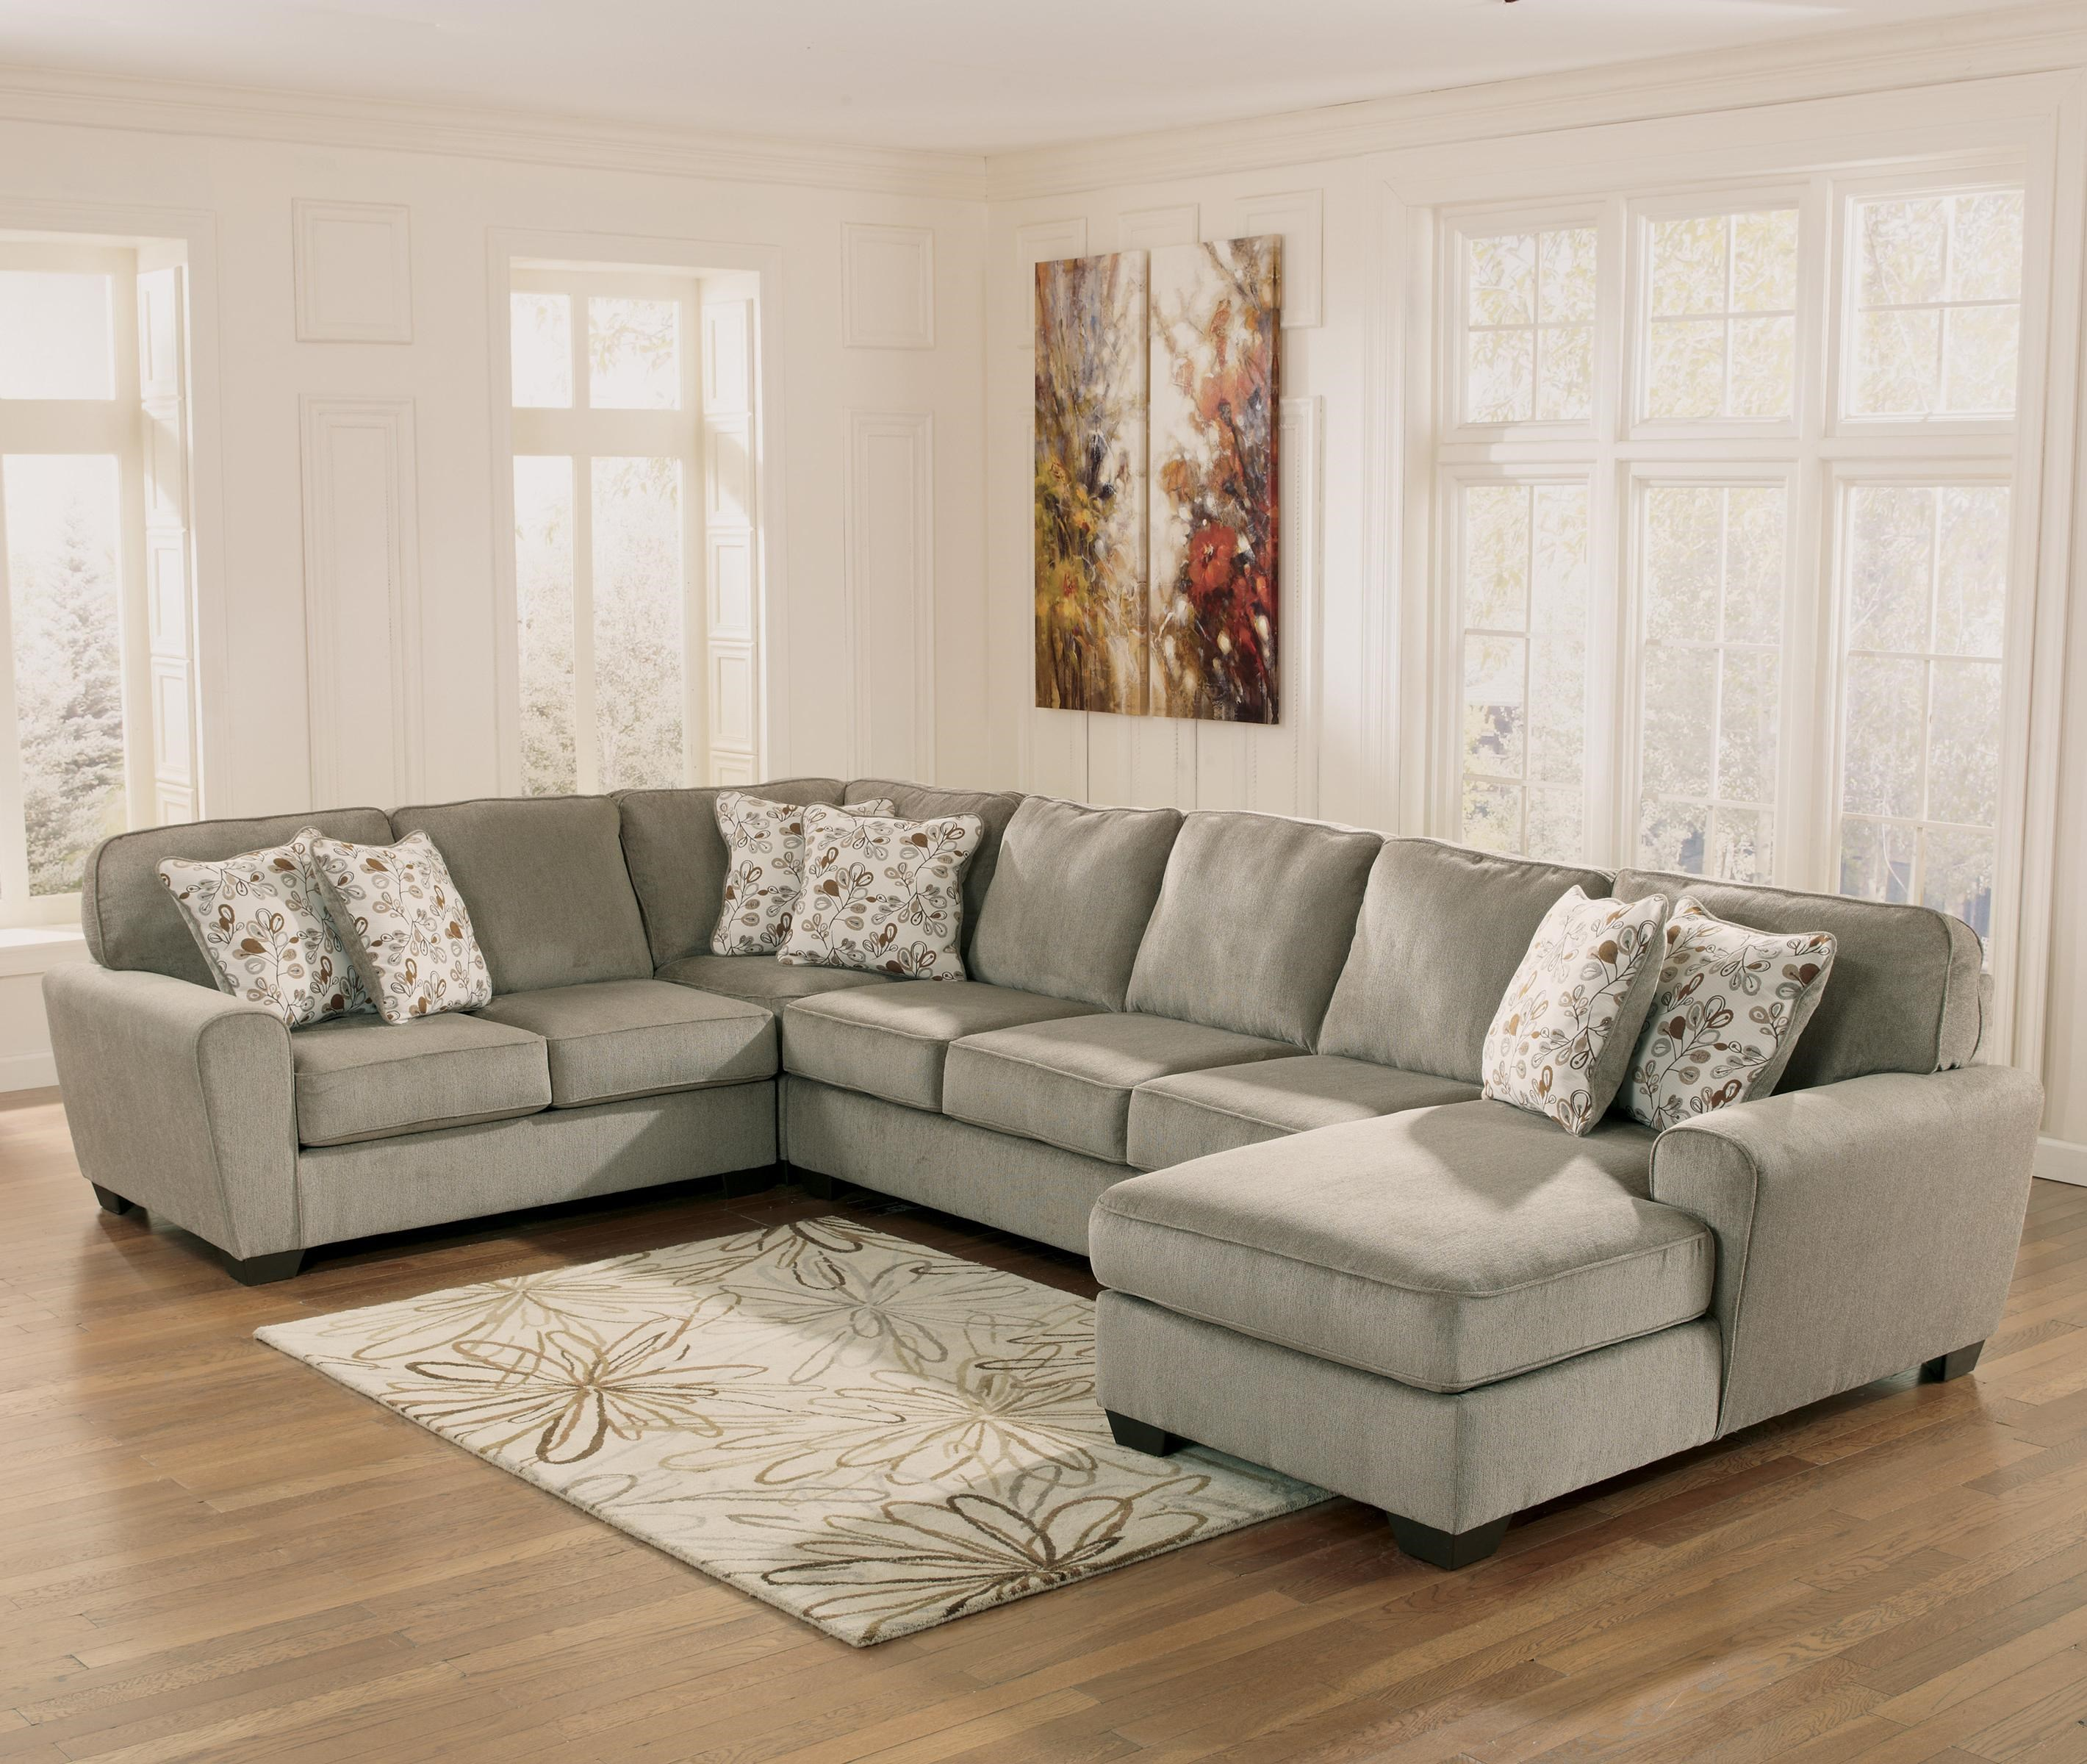 Ashley Furniture Patola Park - Patina 4-Piece Sectional with Right Chaise - Miskelly Furniture - Sofa Sectional : ashley sofa sectional - Sectionals, Sofas & Couches